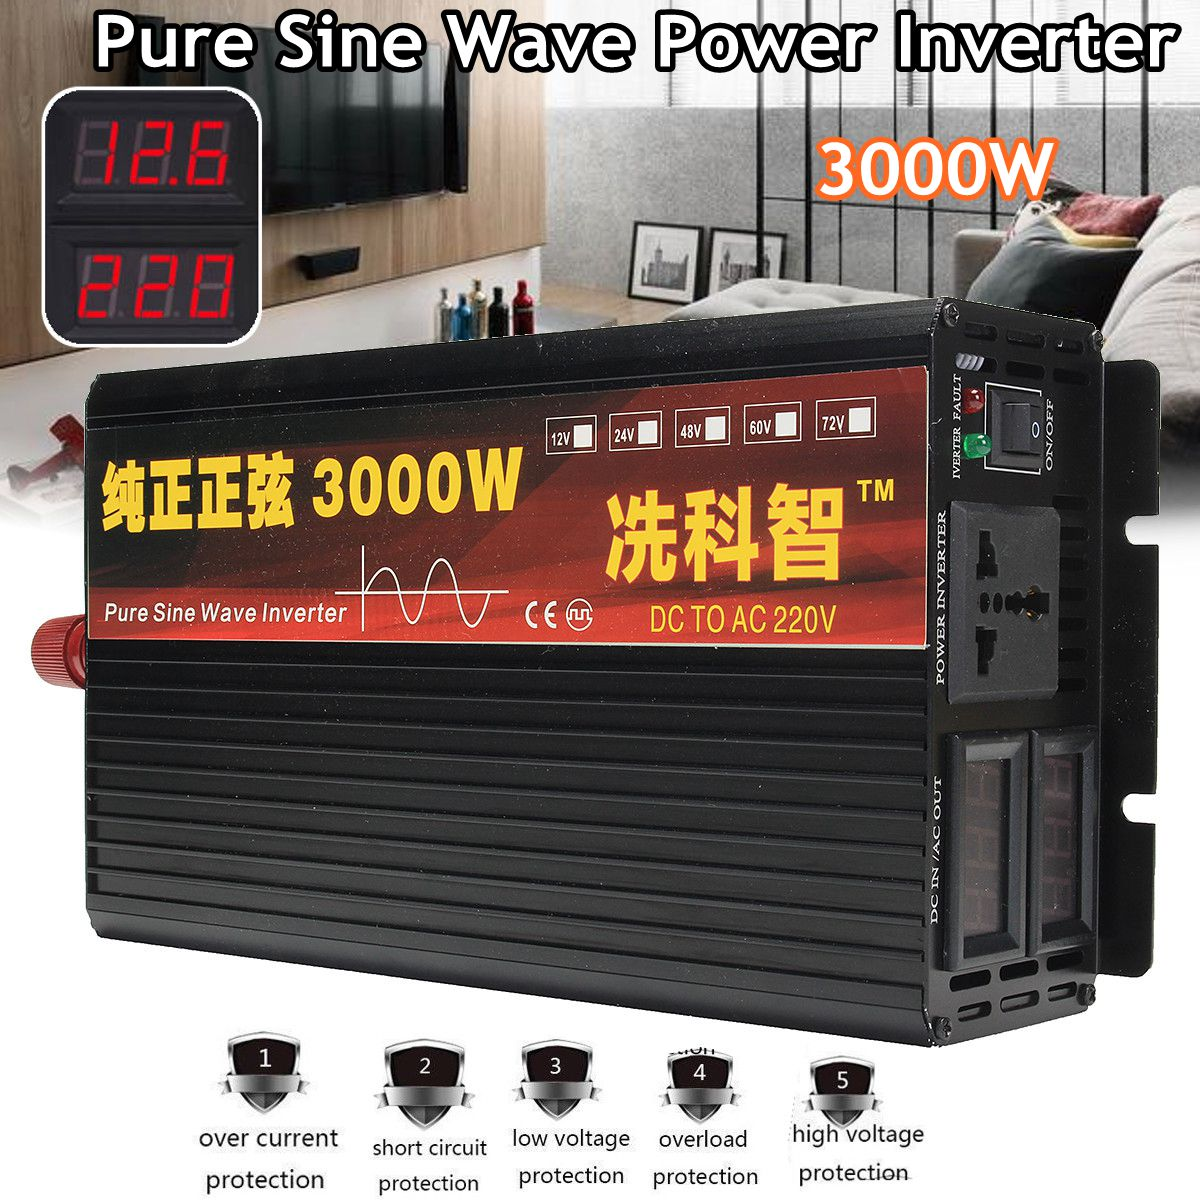 Inverter 12 v/24 v 220 v 2000/3000/4000 watt Spannung transformator Reine Sinus Welle Power inverter DC12V zu AC 220 v Konverter + 2 Led-anzeige